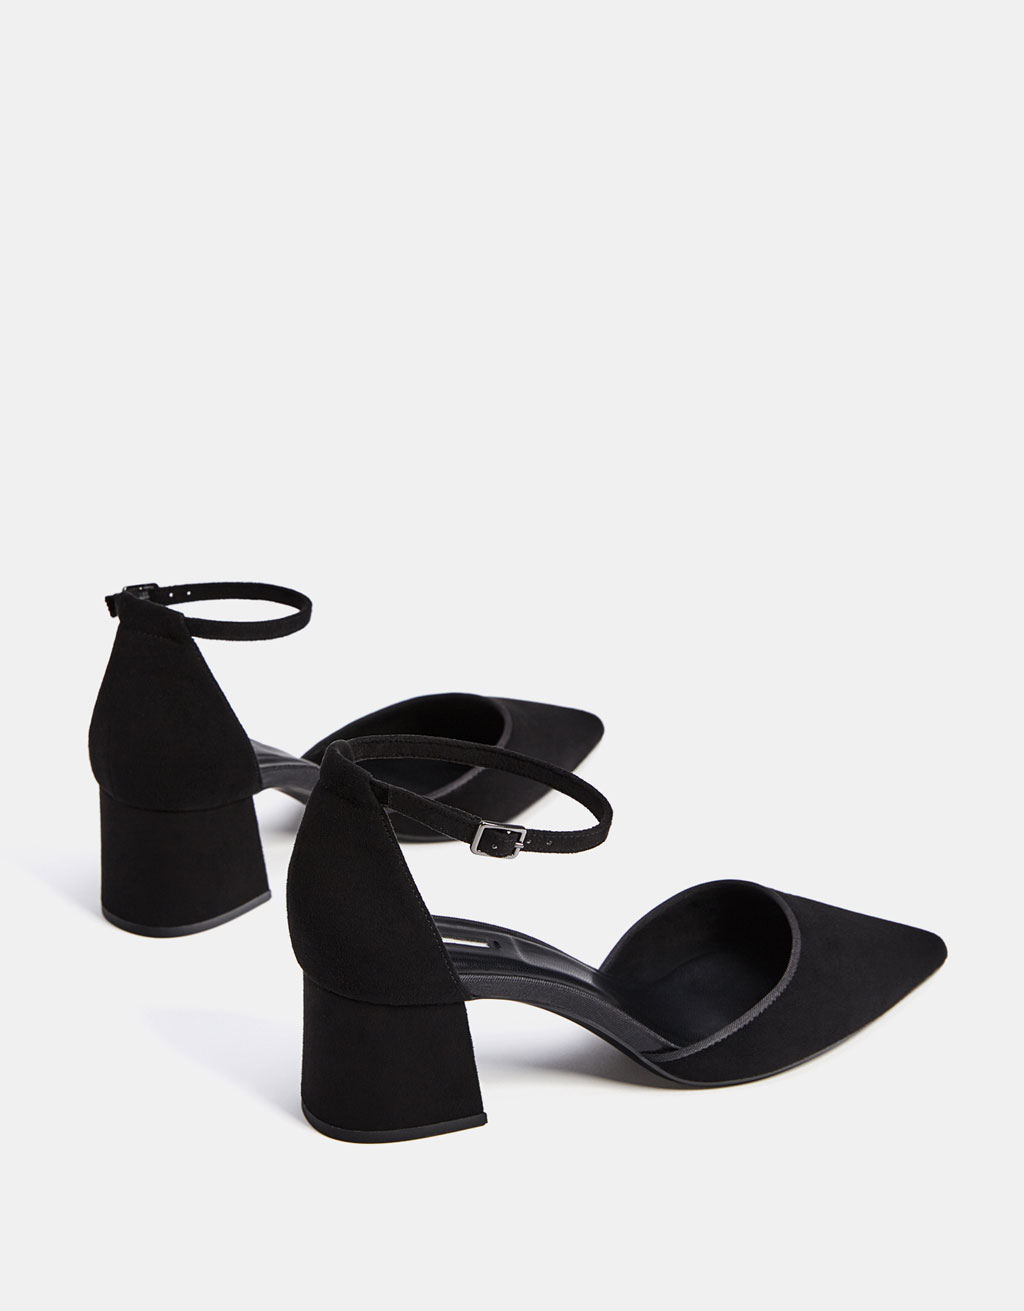 Mid-heel shoes with ankle straps